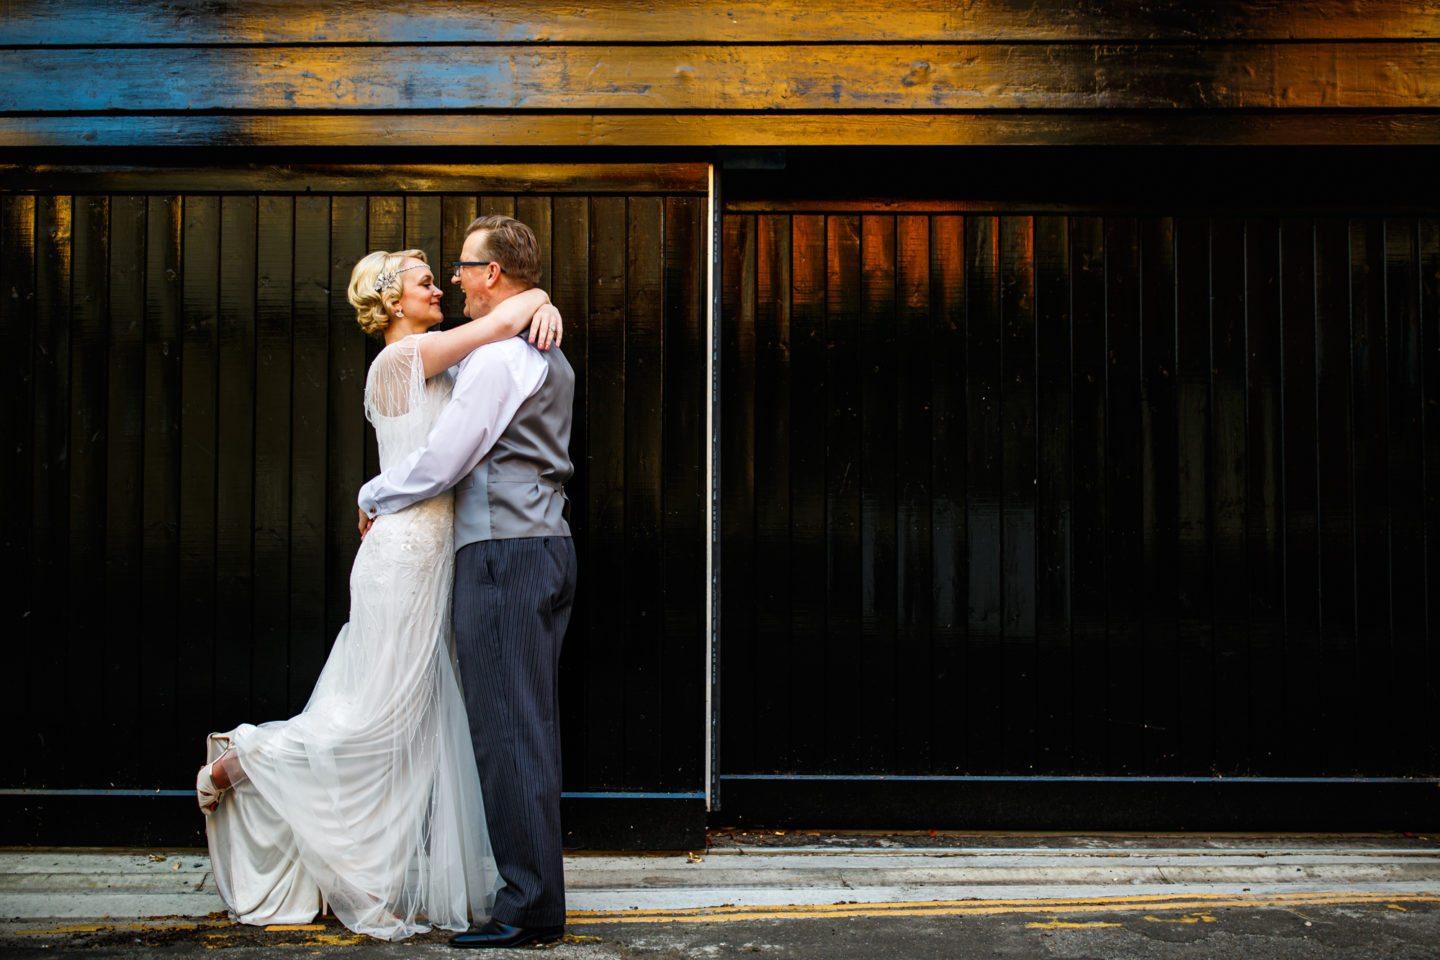 Intimate Wedding At Cambridge Registry Office With 1920s Inspired Wedding Dress